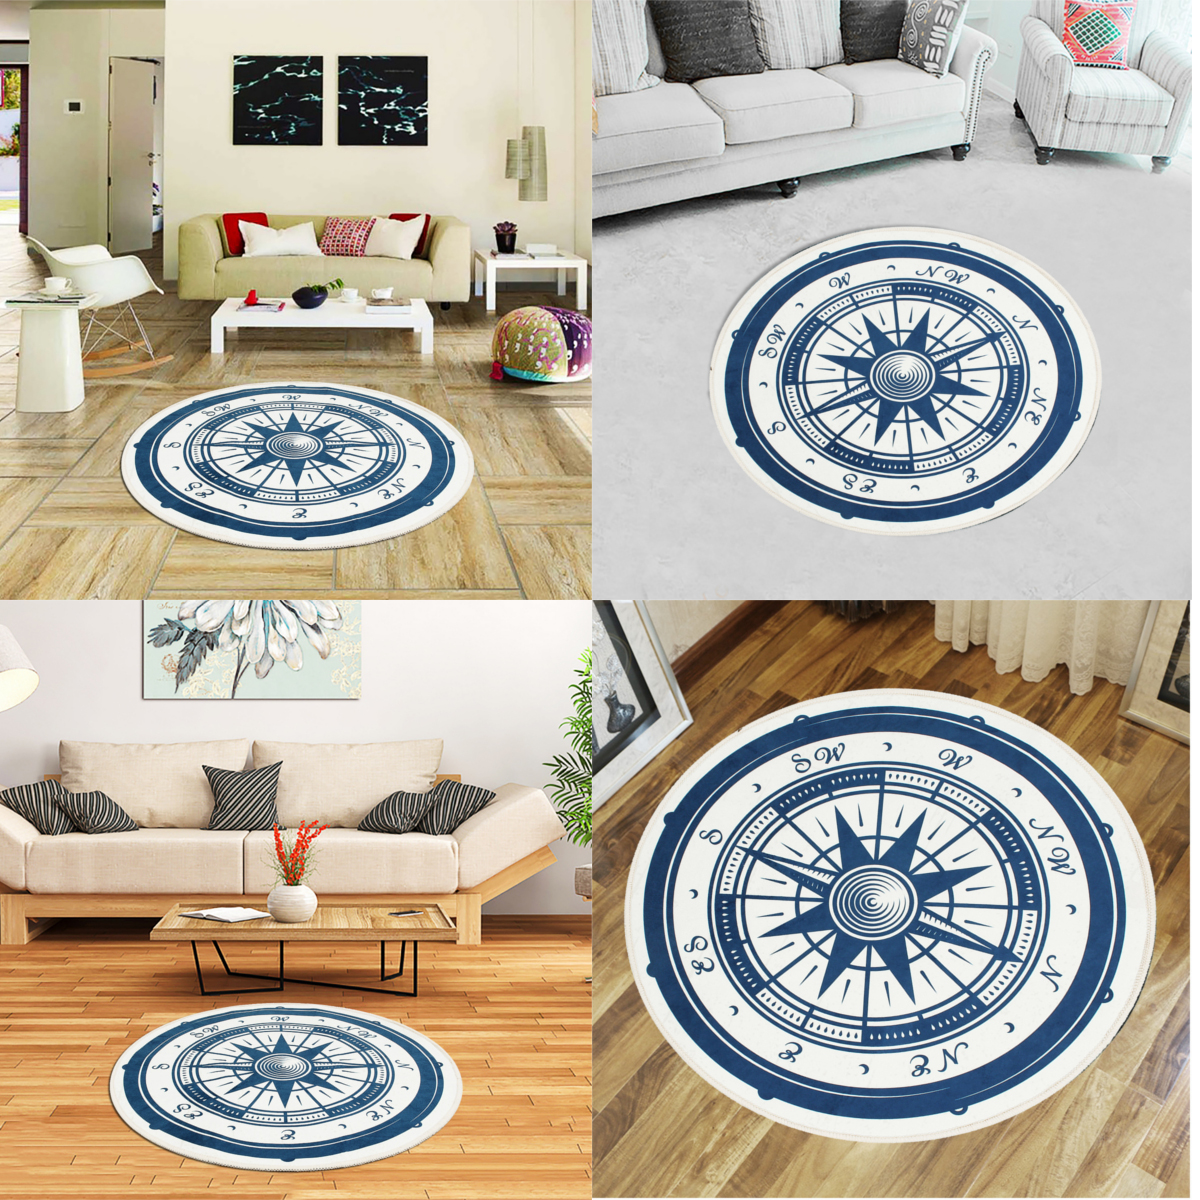 Bath Linen Custom American Dallas Cowboys Texas Star Coral Velvet Bath Rugs Non Slip Shower Mat For Bathroom Decor Sets Door Rug With Rubber Backing Absorbent Kitchen Floor Carpet 17 X 24